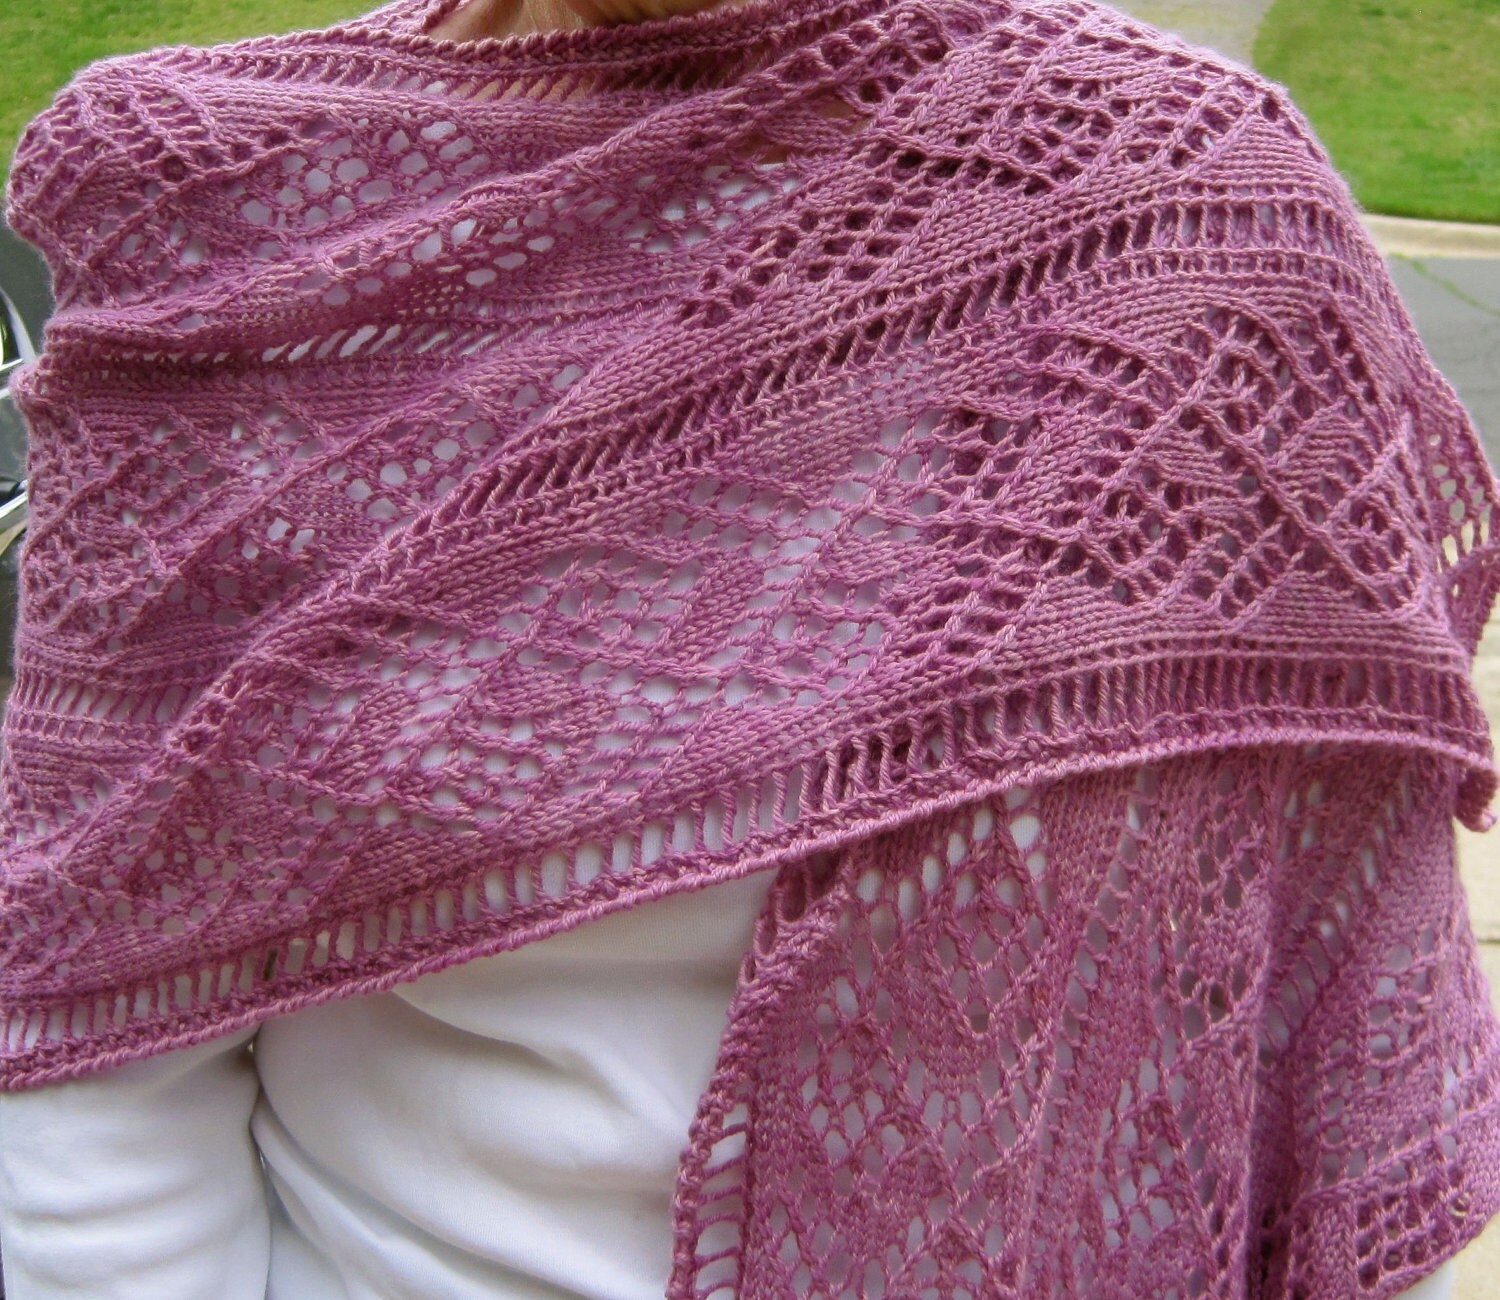 Knit Wrap Pattern: Ladder and Lace Light by WearableArtEmporium